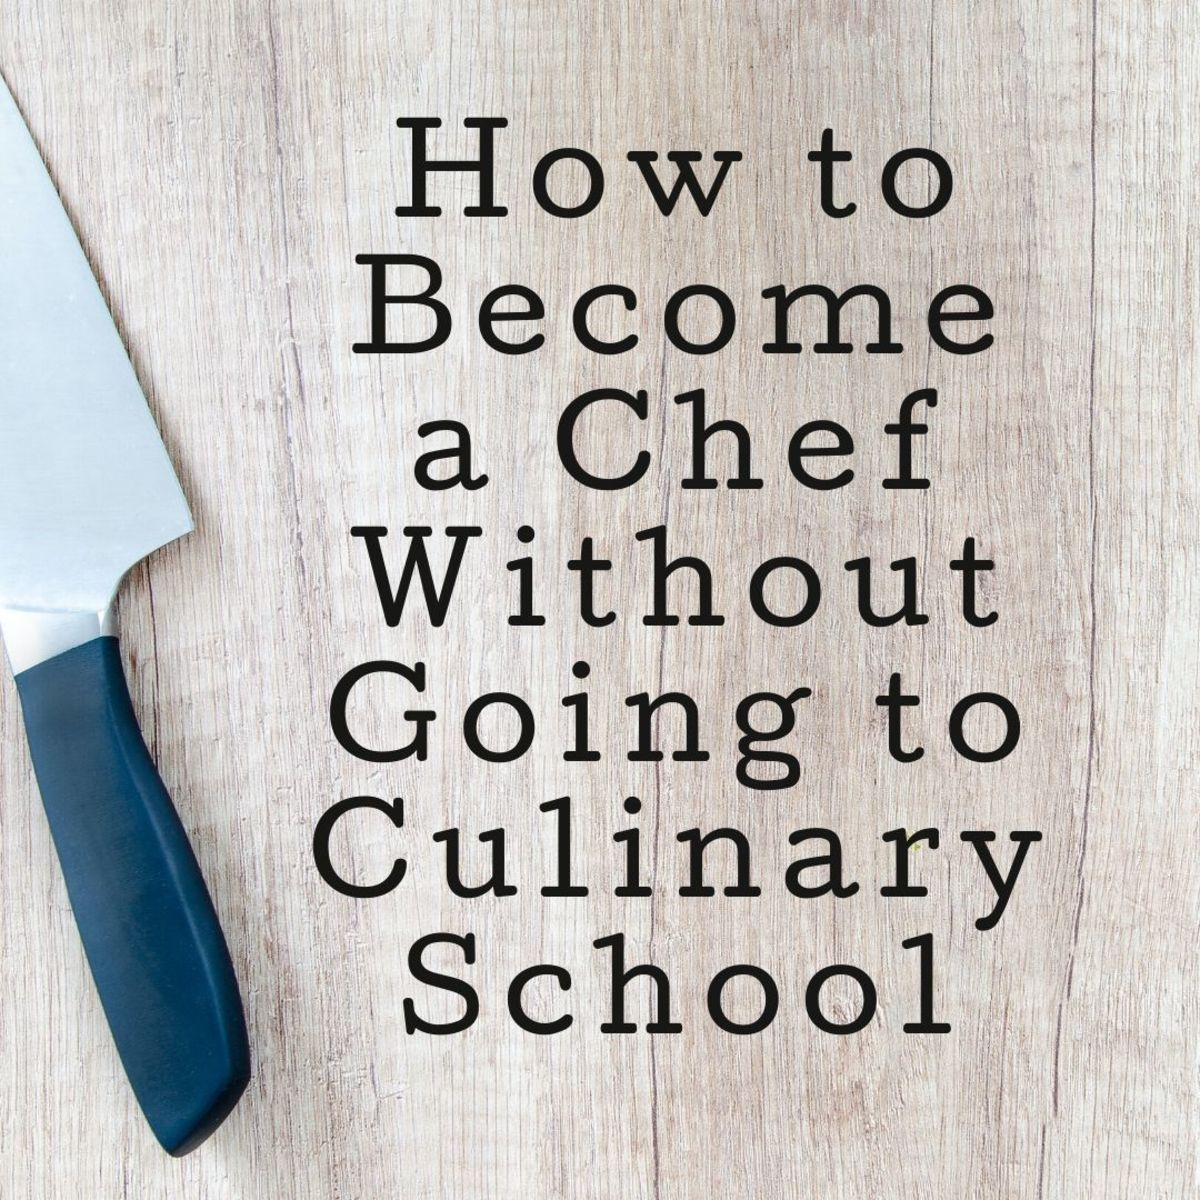 How You Can Become a Chef Without Going to Culinary School